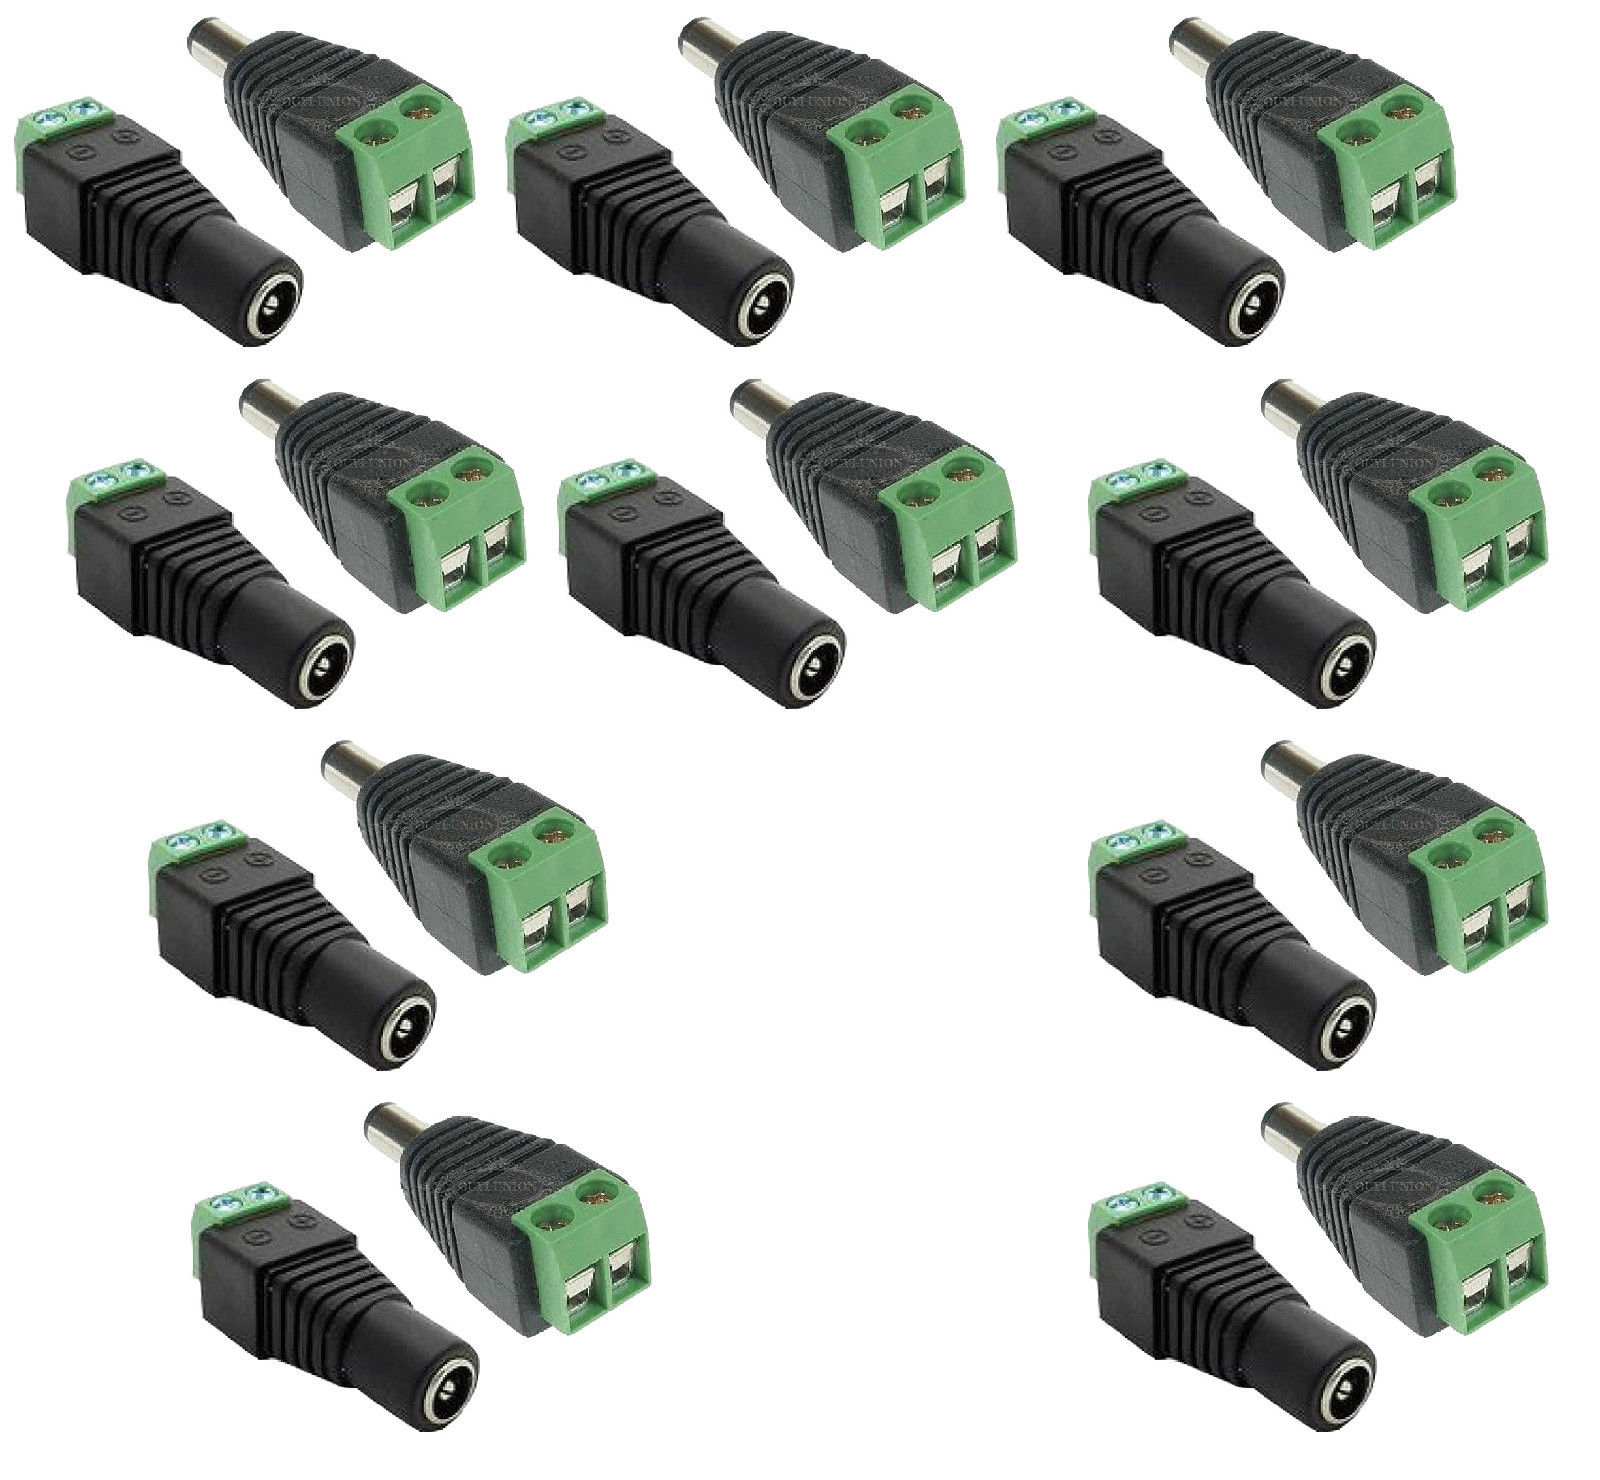 5 pcs 12V Male /& Female 2.1x5.5mm DC Power Jack Plug Adapter Connector for CCTV